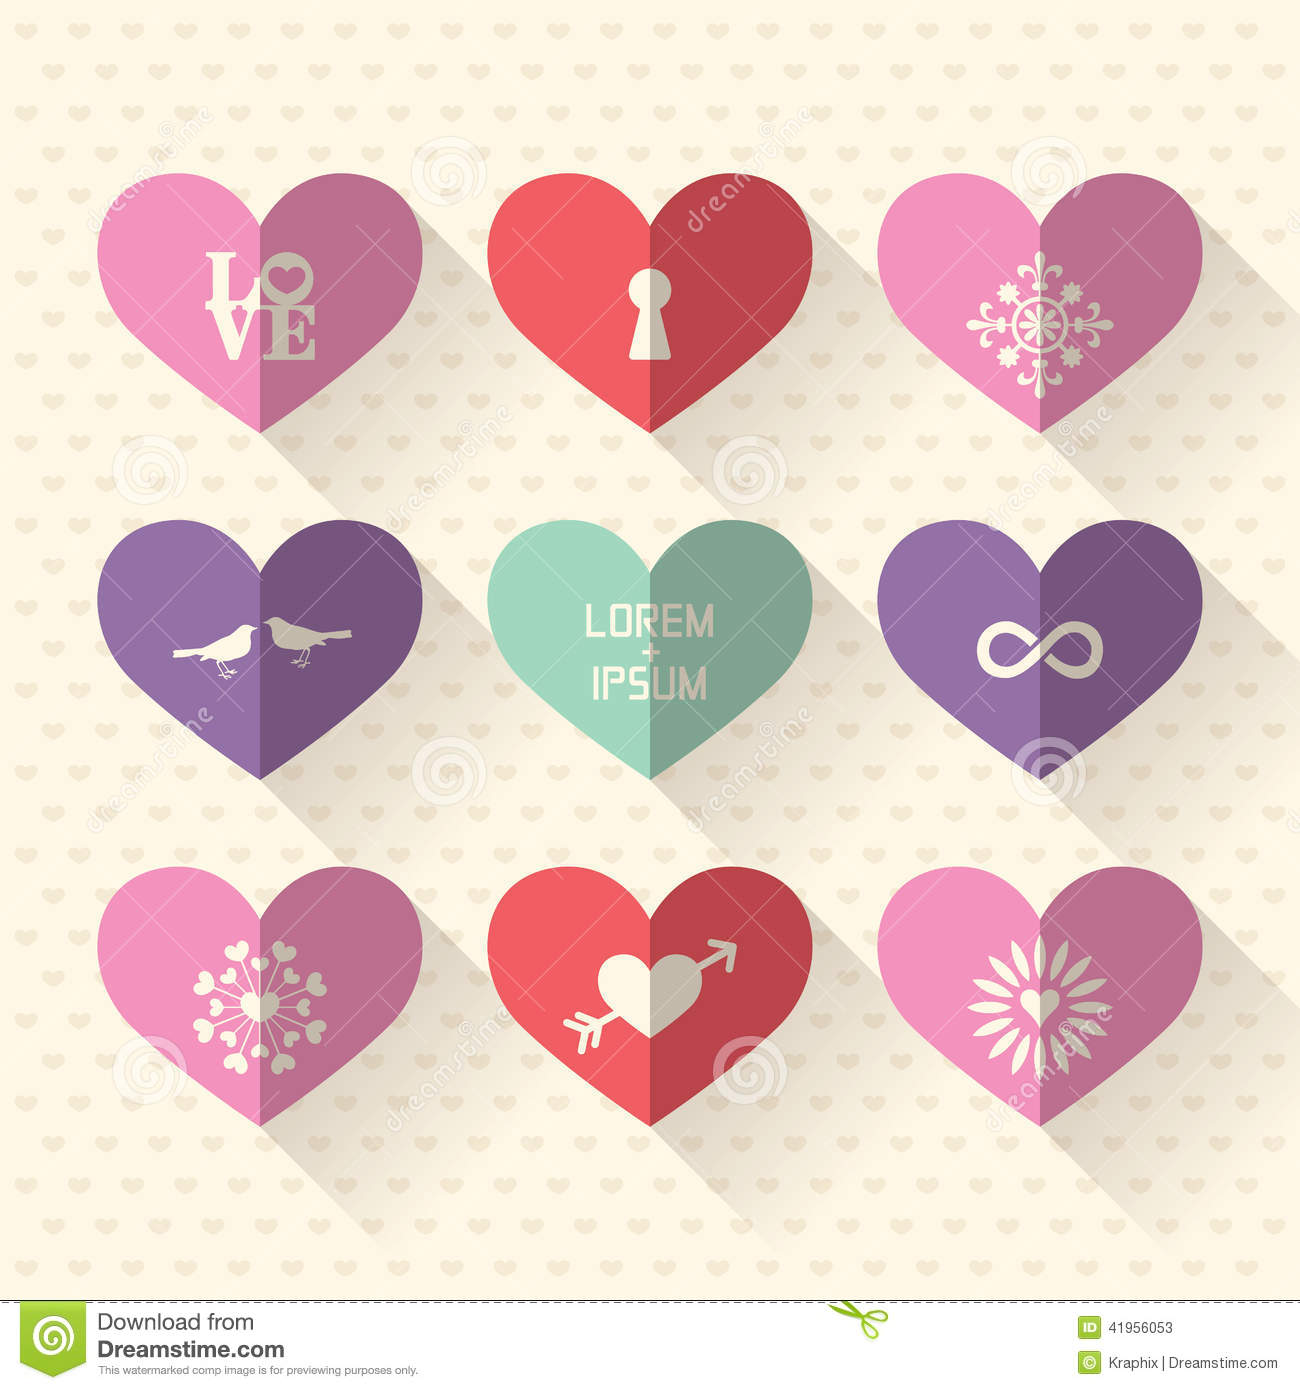 Heart symbol icon set with love and wedding concept